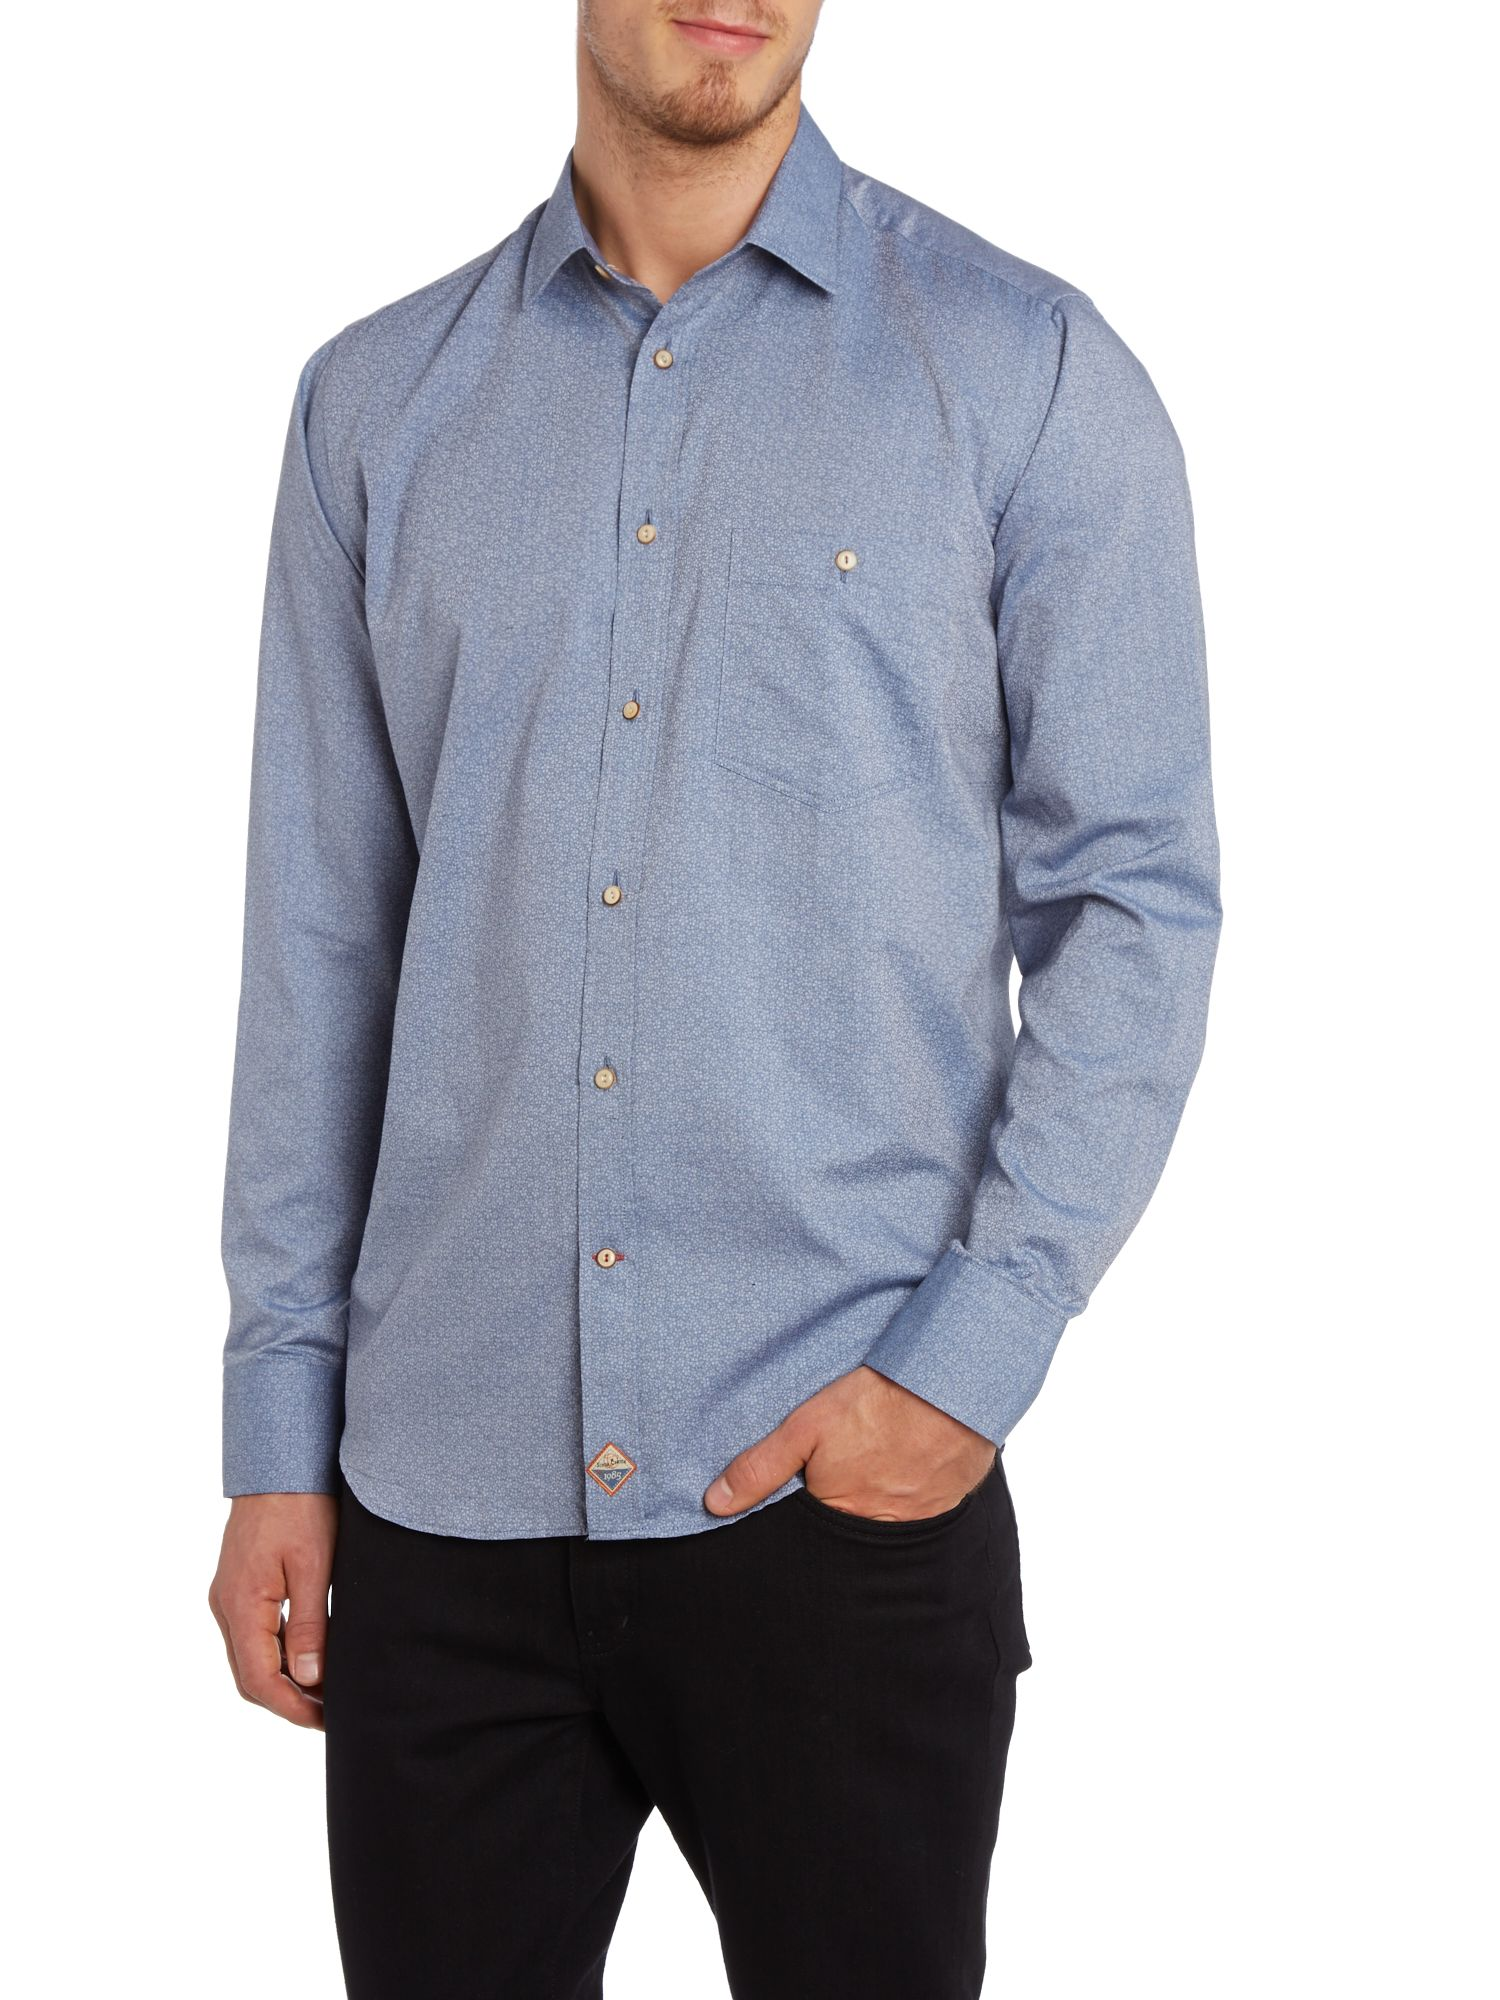 Ditsy floral one pocket slim fit shirt